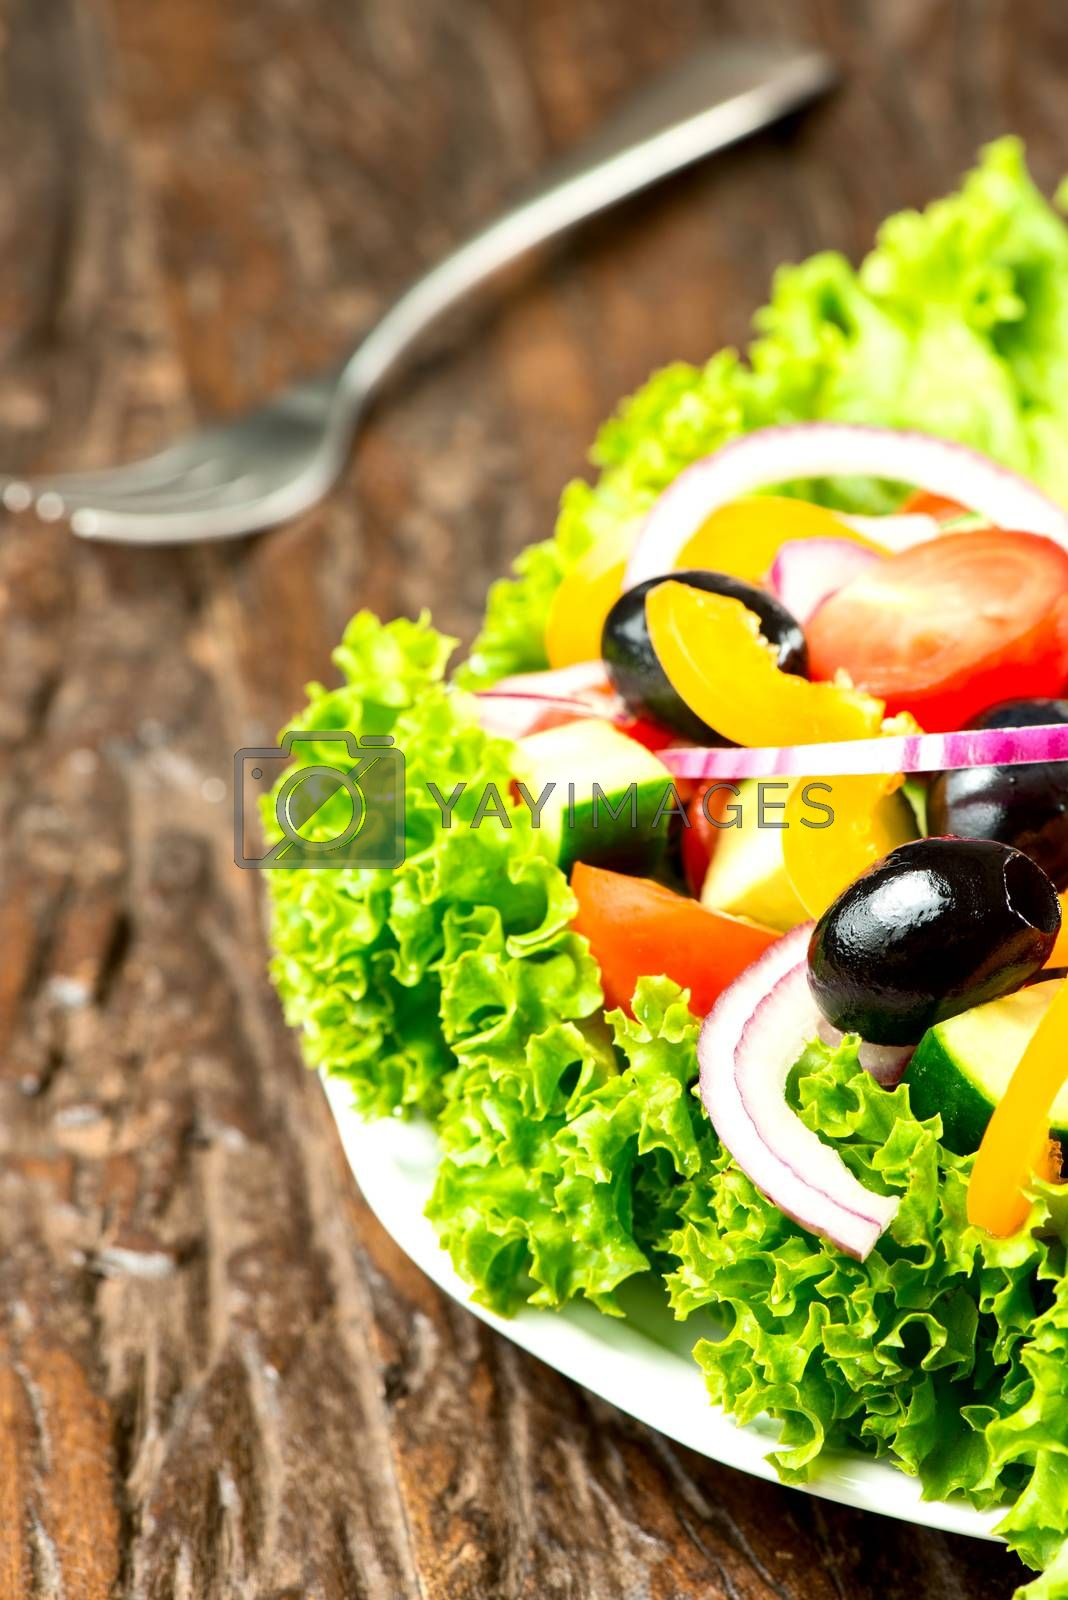 Royalty free image of Salad with vegetables and greens in plate on wooden table by Nanisimova